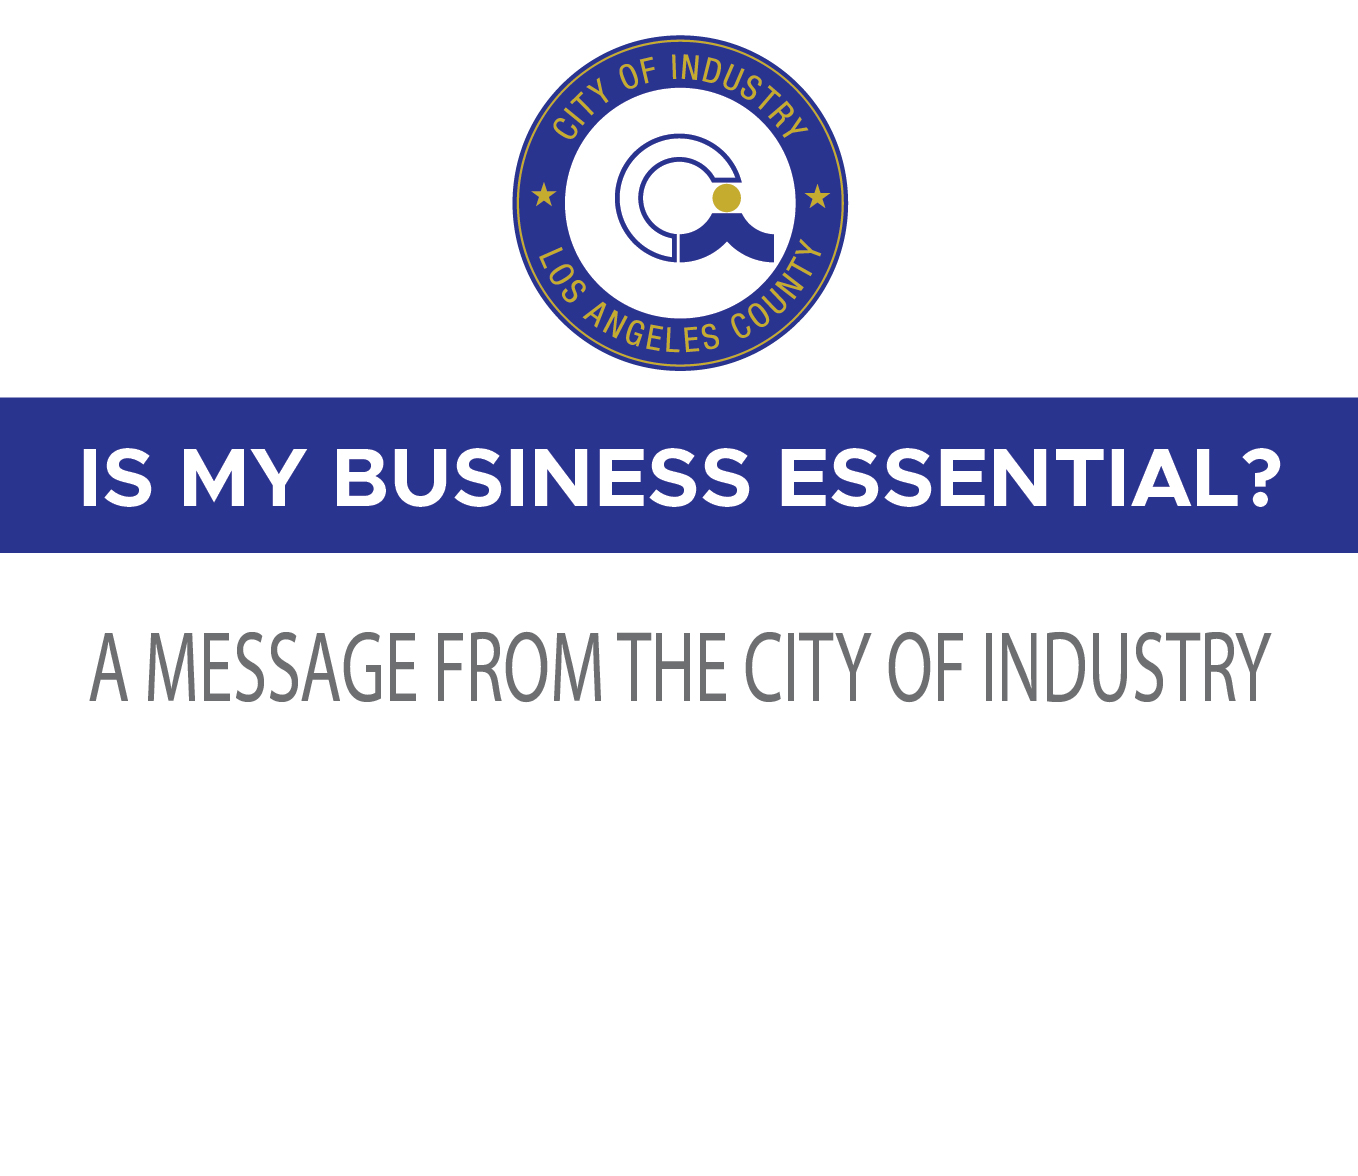 A MESSAGE FROM THE CITY OF INDUSTRY